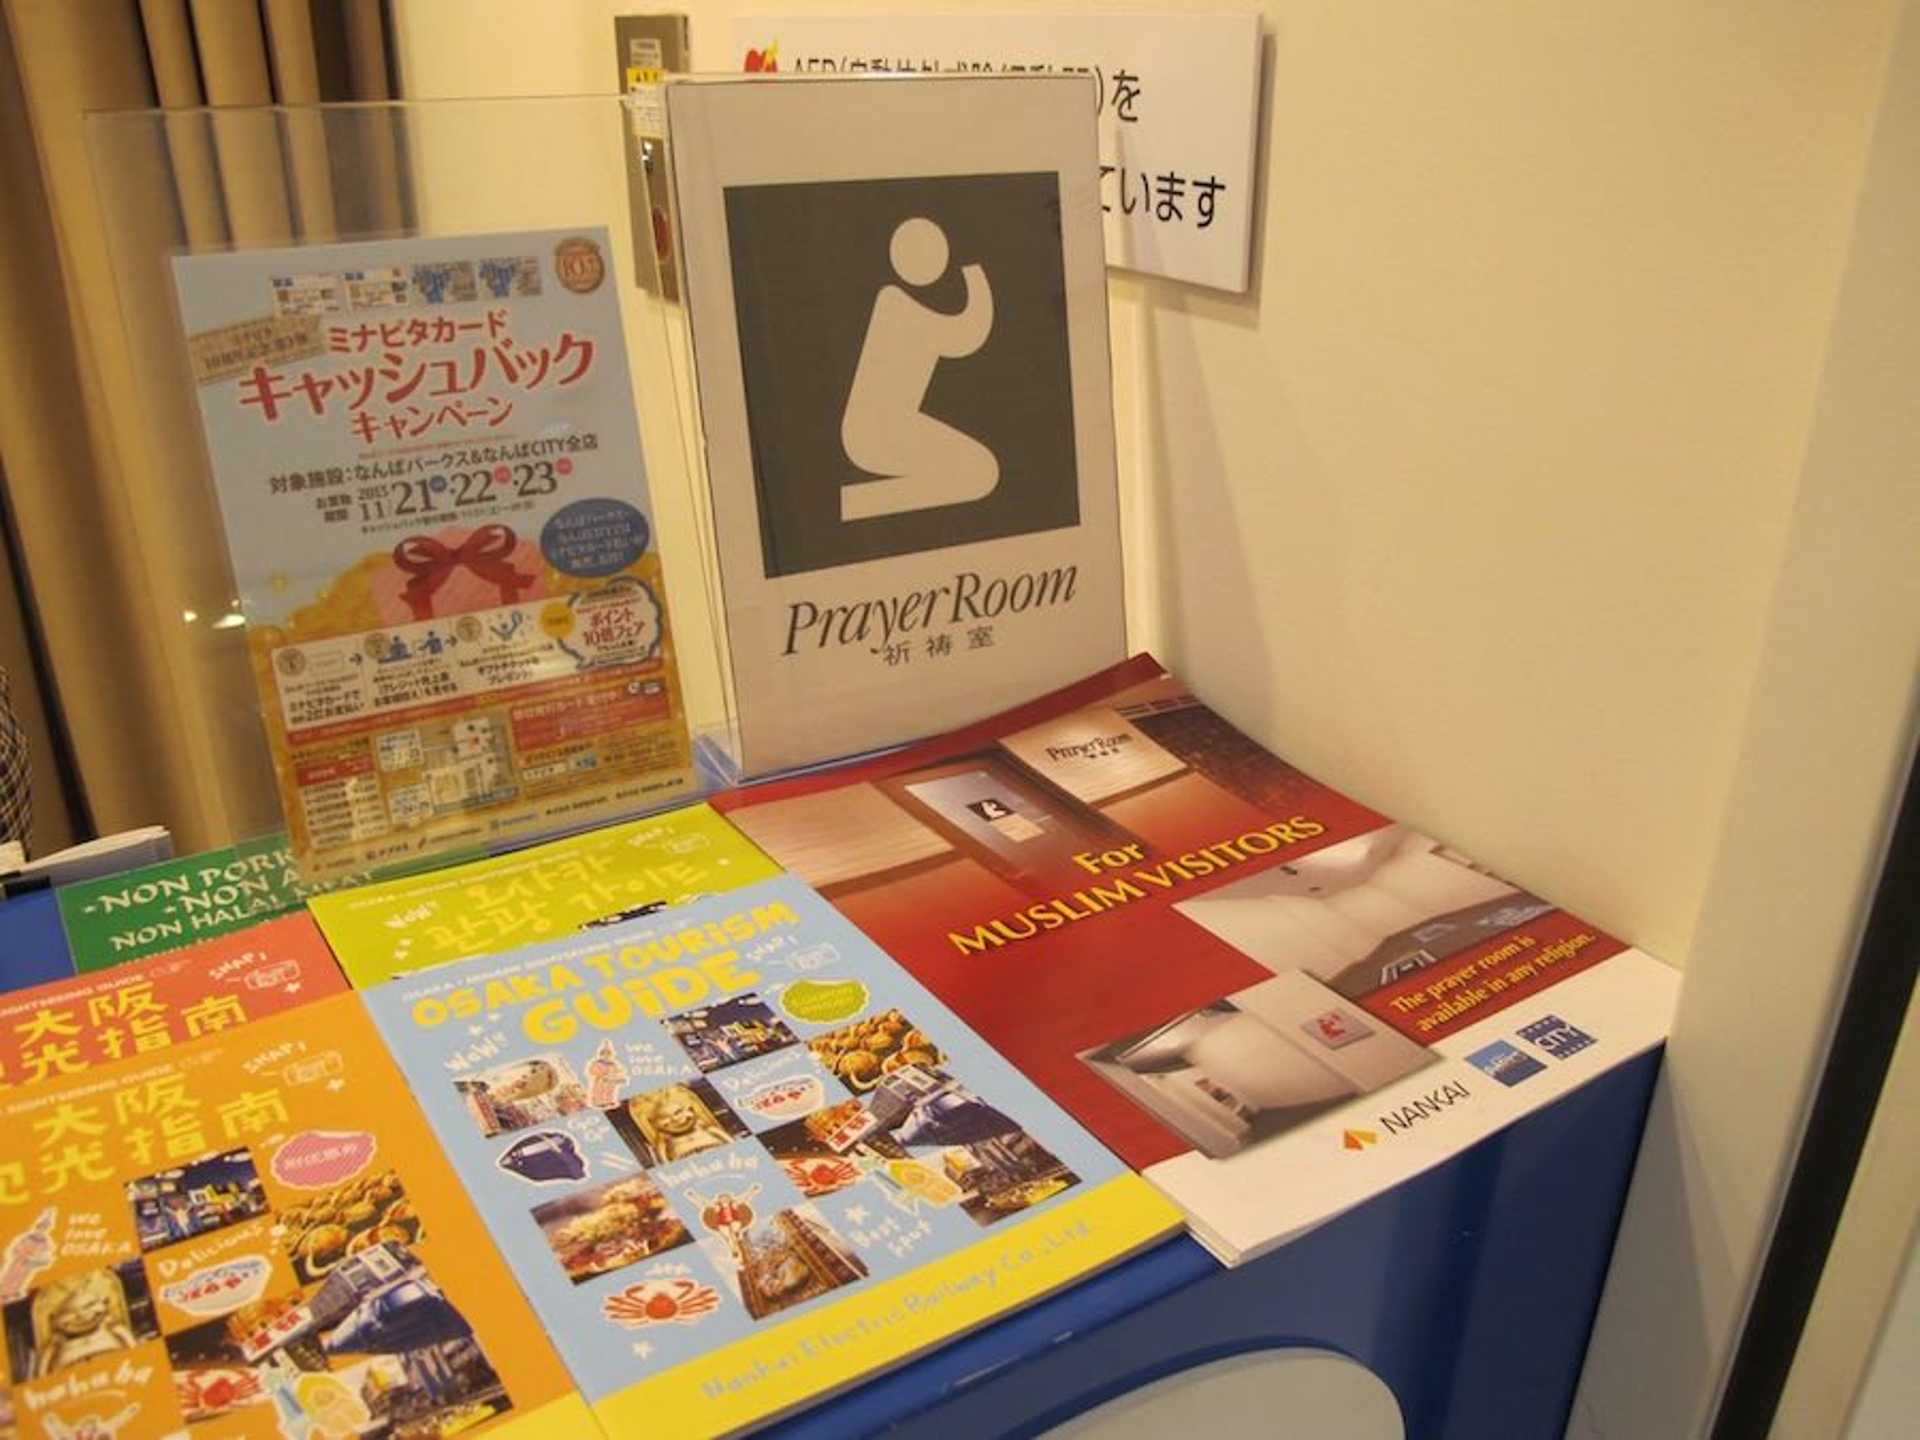 To use the prayer room, make your way to the Information Centre at Basement 1, Namba City Main Building.